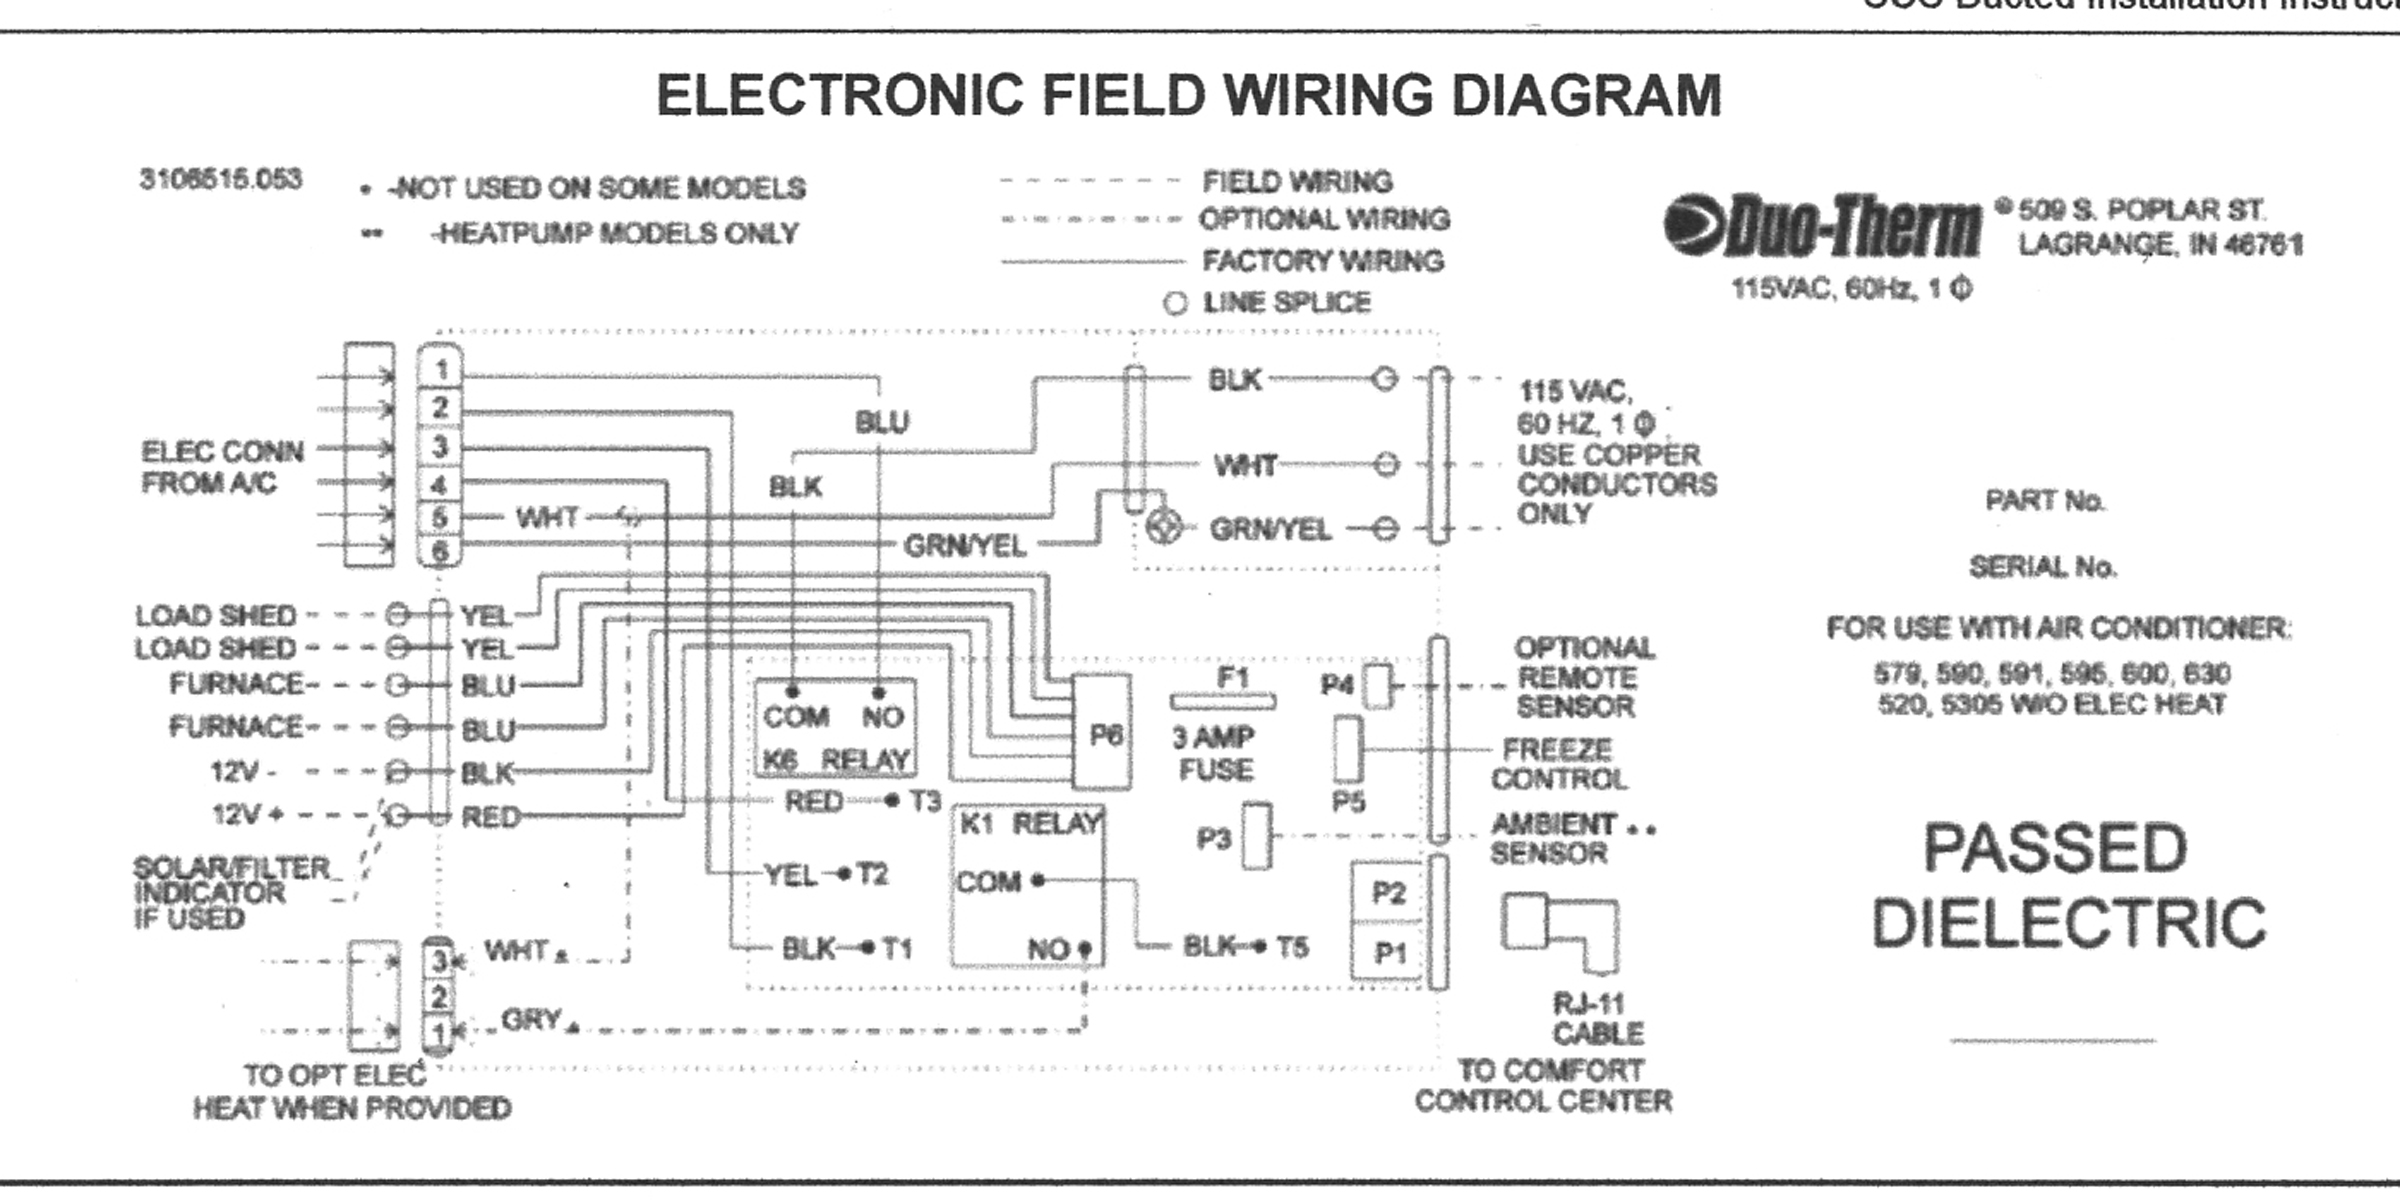 trane rooftop hvac wiring diagrams carrier rooftop unit wiring diagrams carrier heating unit wiring diagram carrier free engine #8